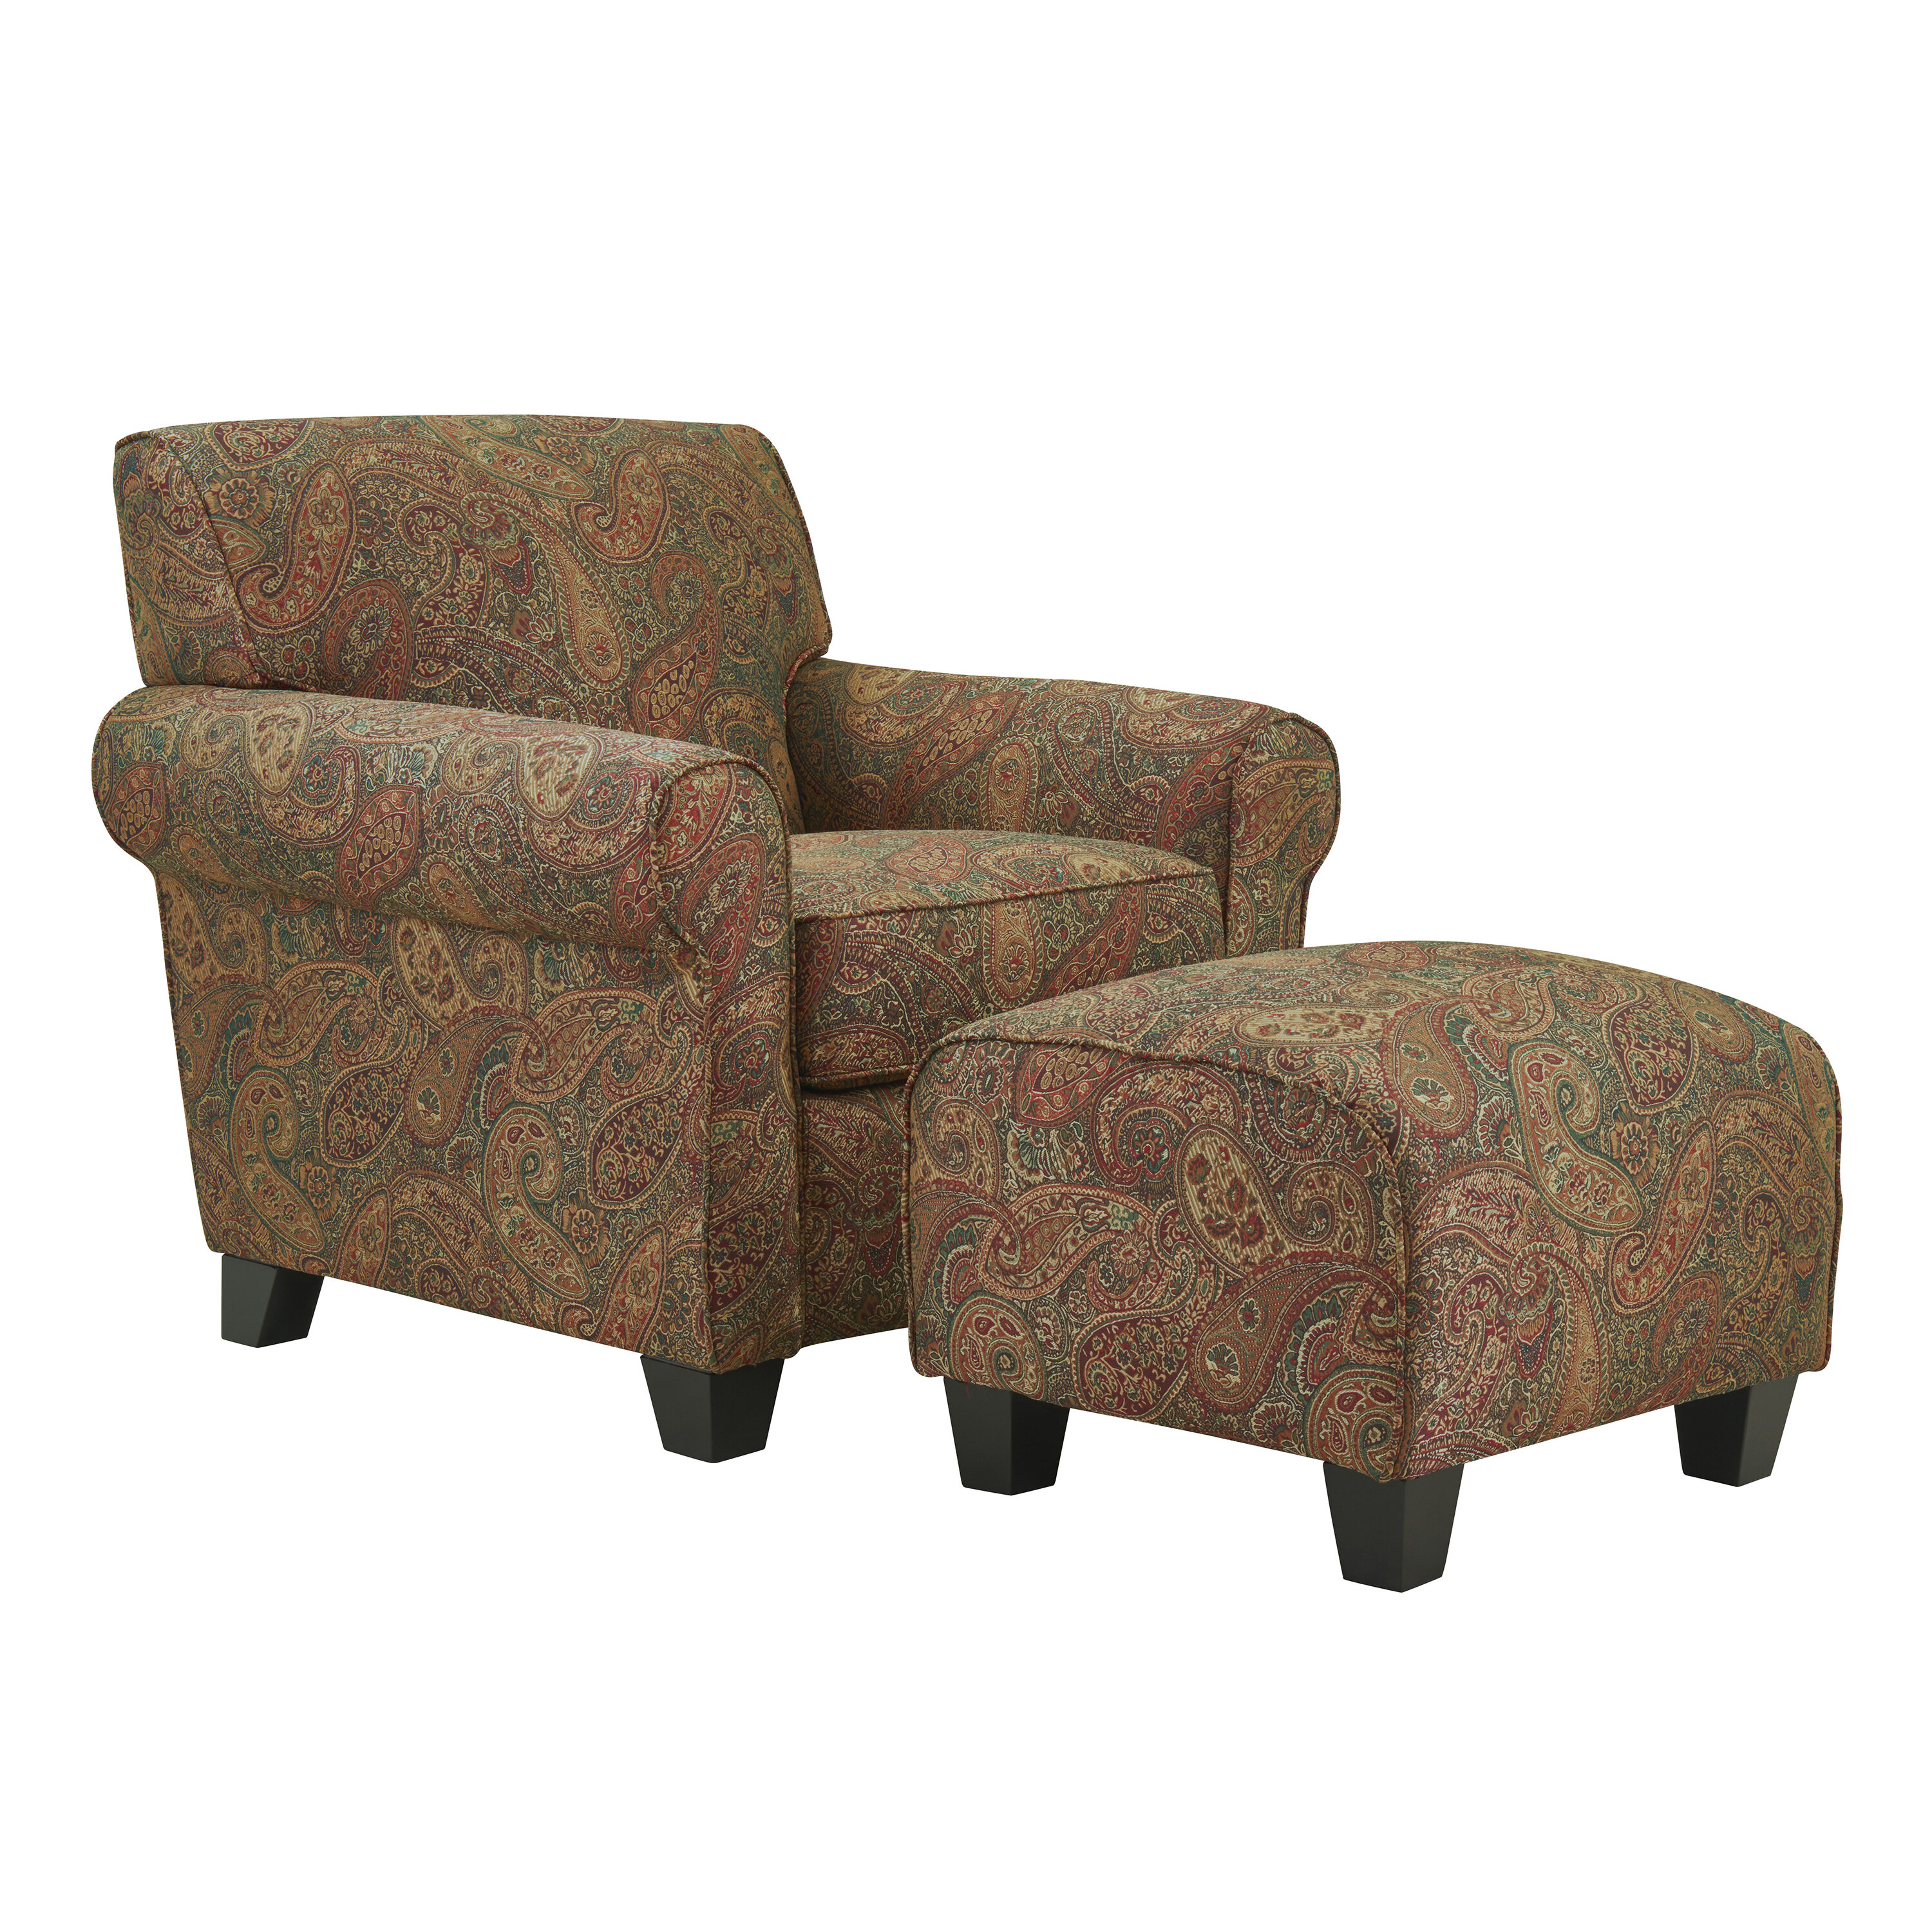 Chair Ottoman Sets You Ll Love In